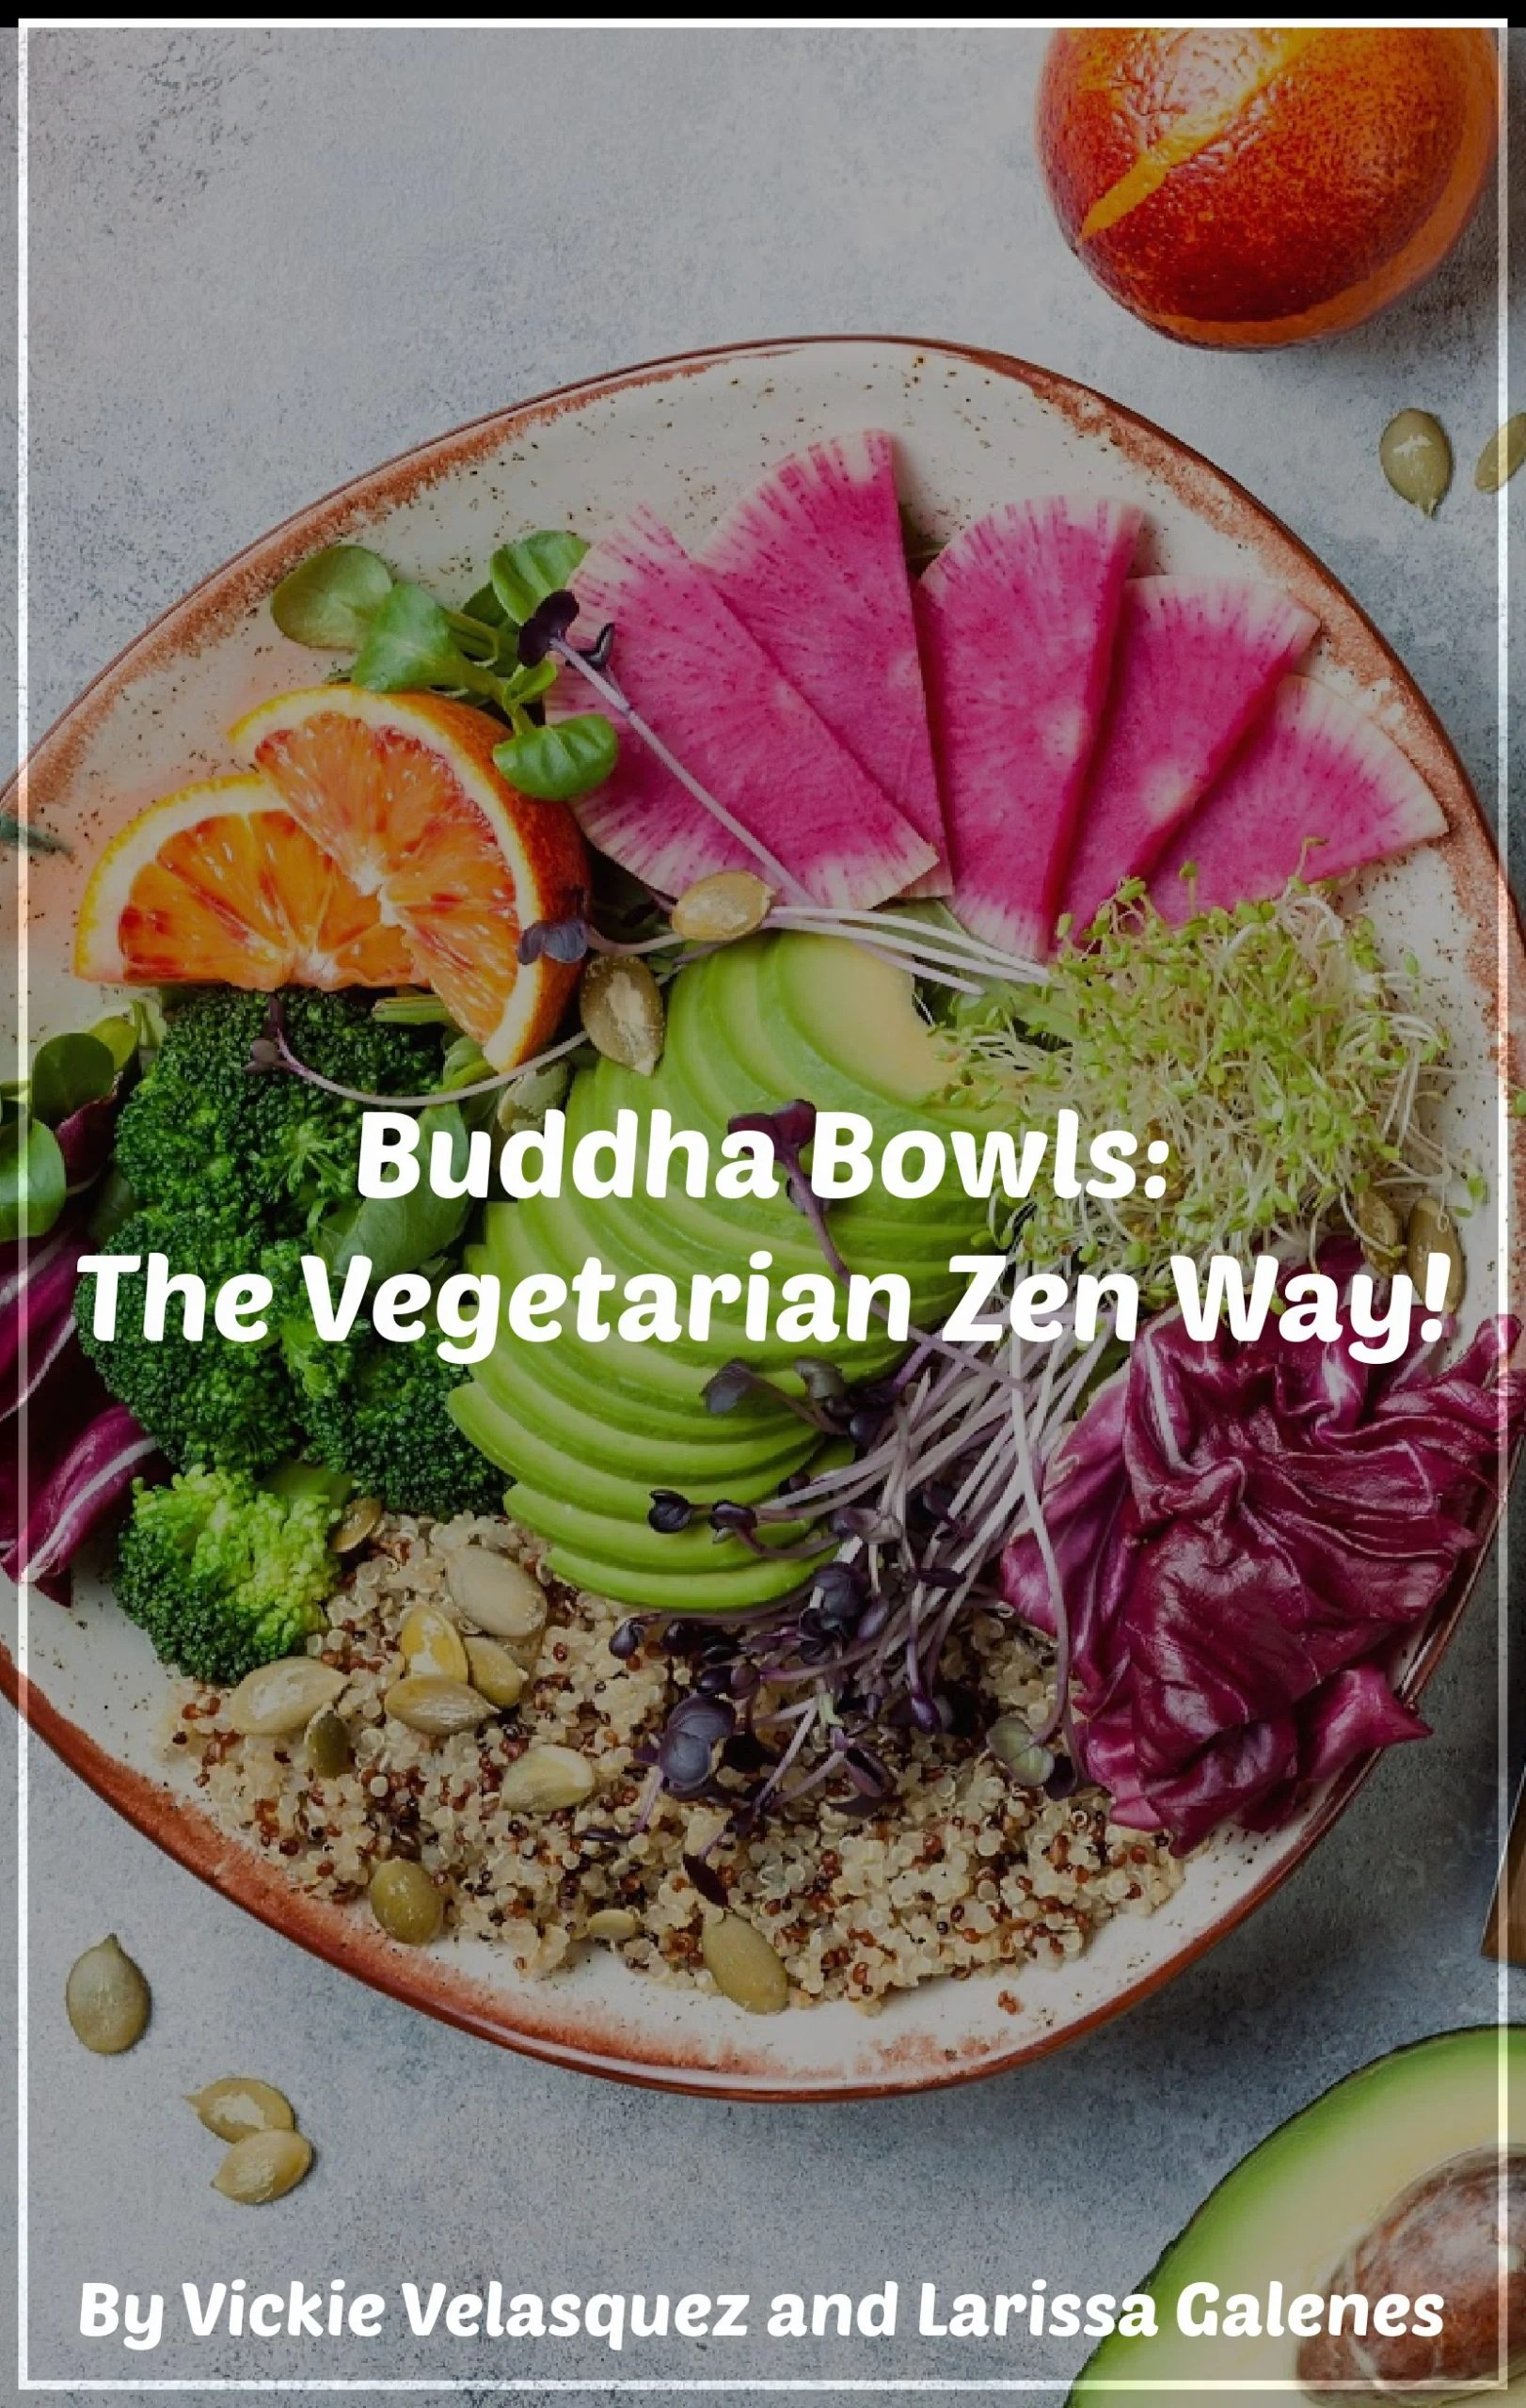 Buddha Bowls: The Vegetarian Zen Way!